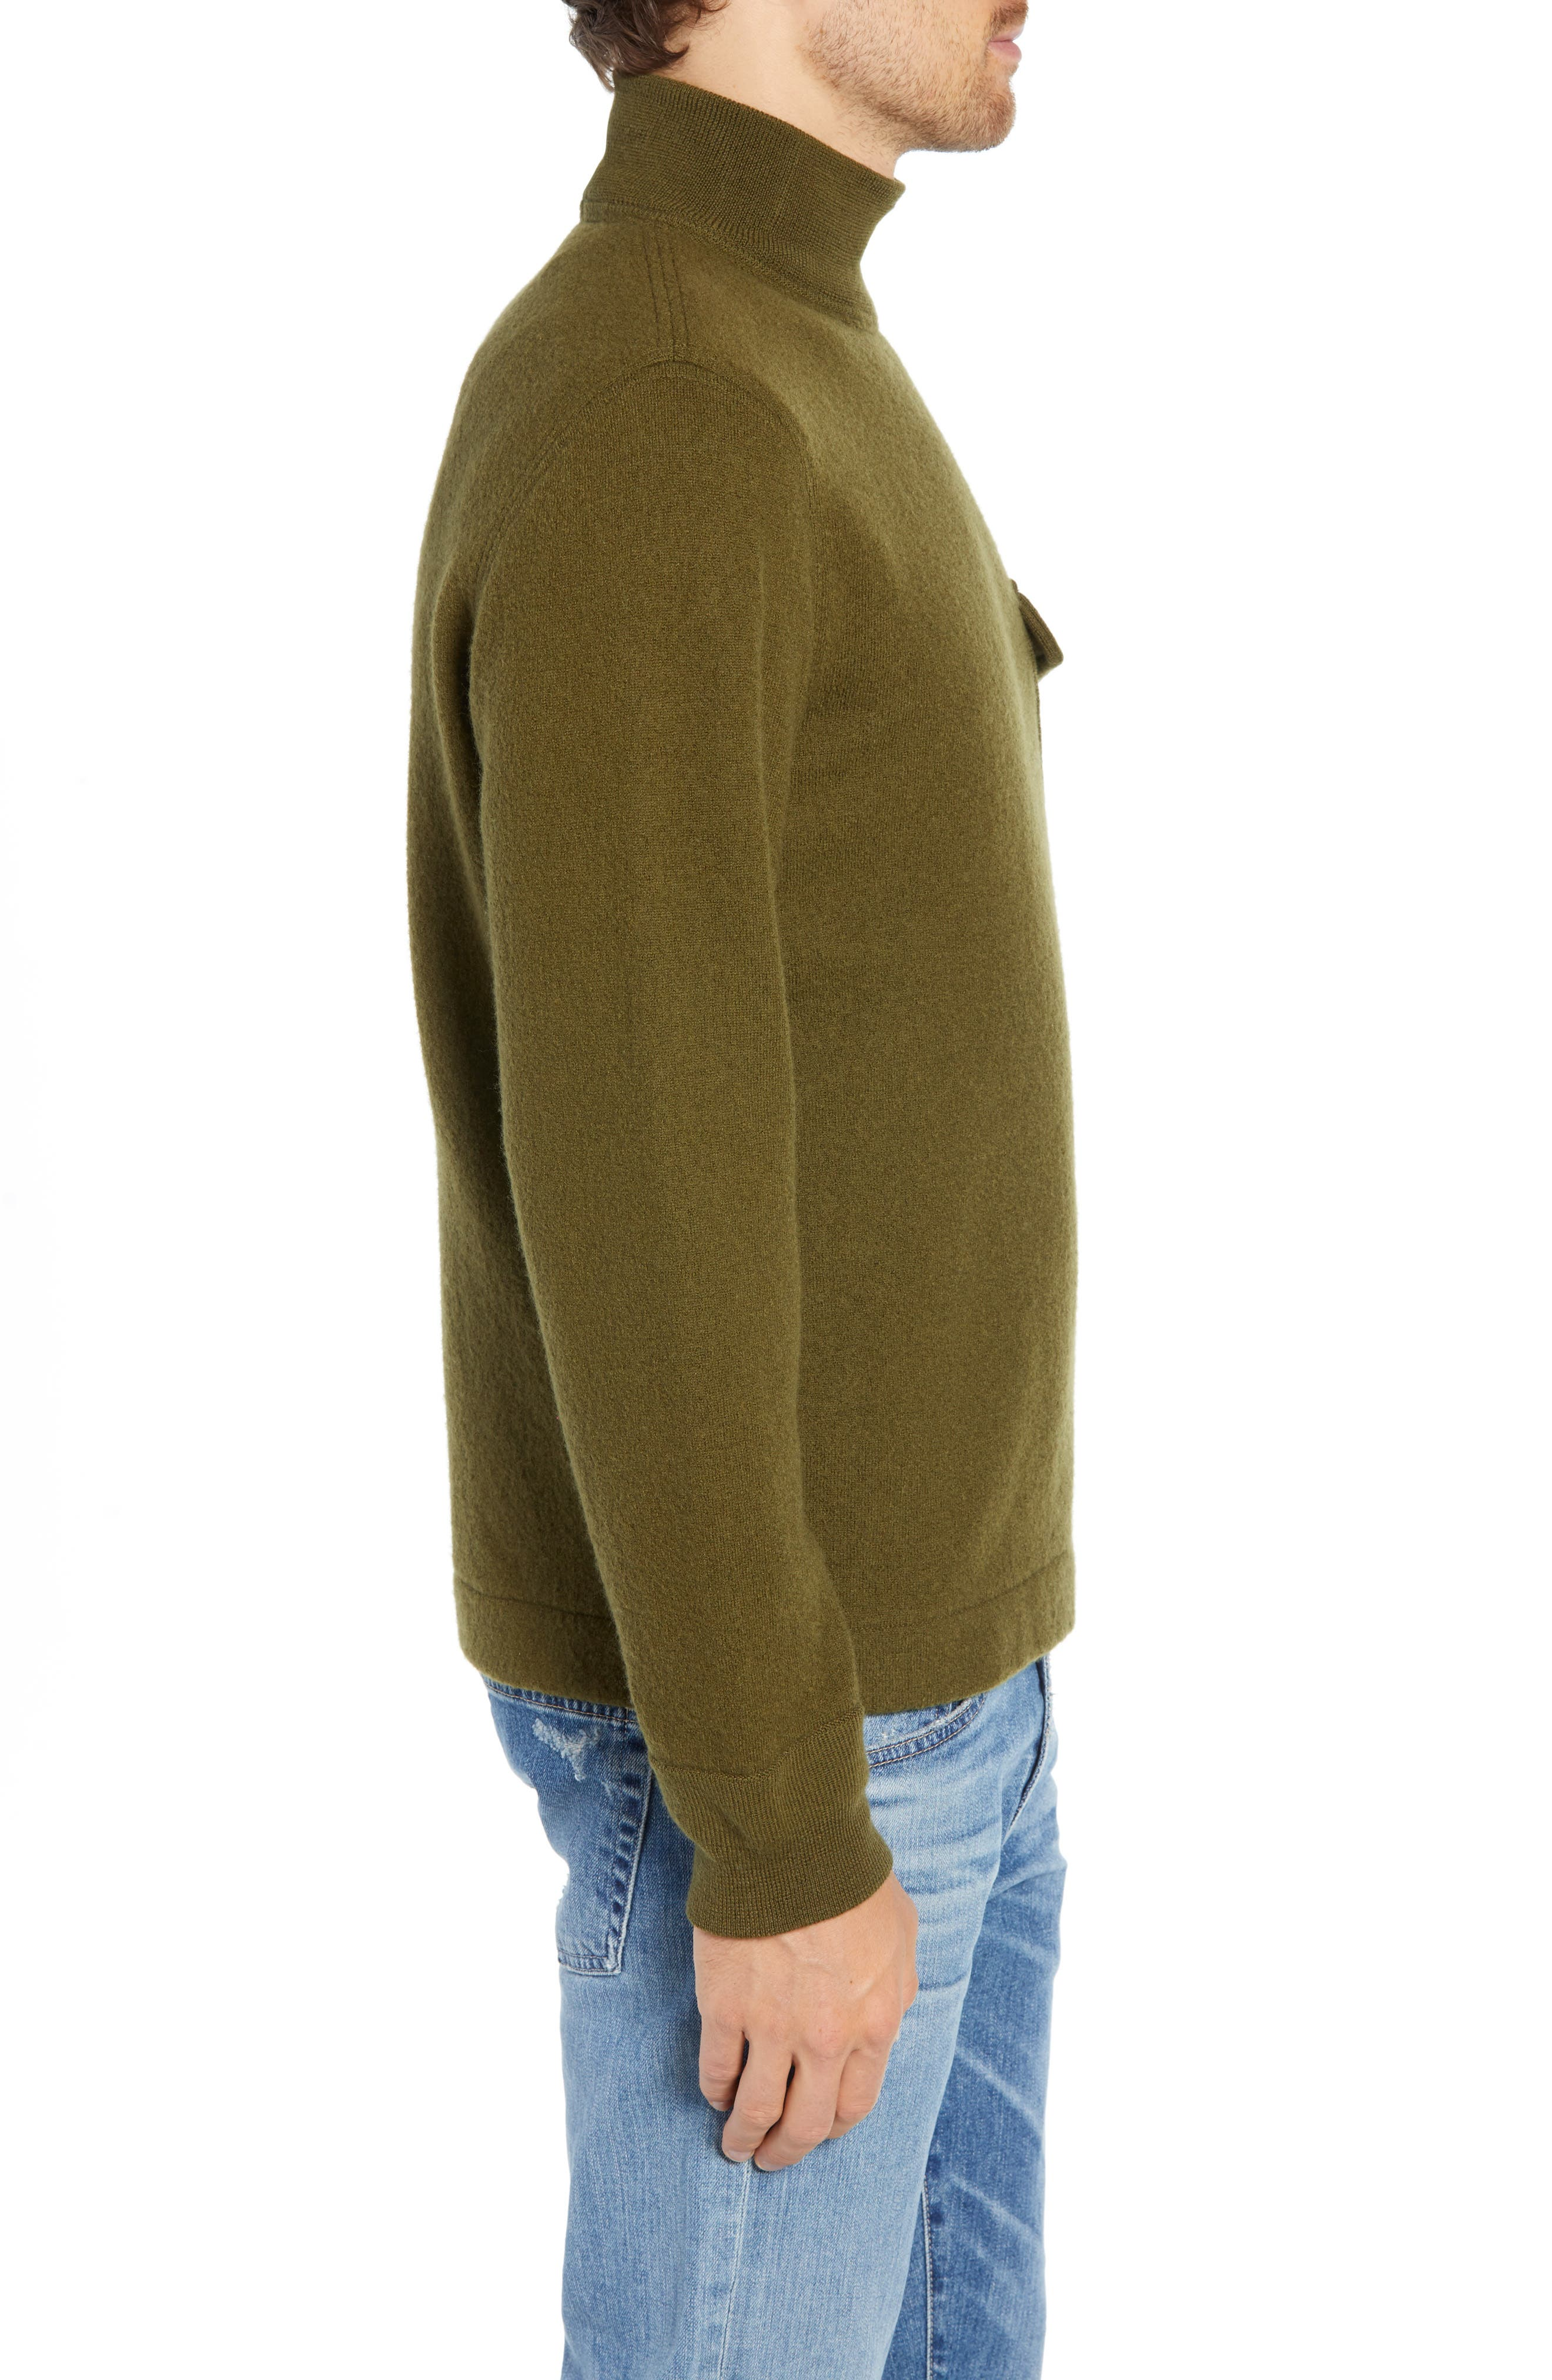 Wallace & Barnes Felted Merino Wool Mock Neck Pullover,                             Alternate thumbnail 3, color,                             ORCHARD GREEN